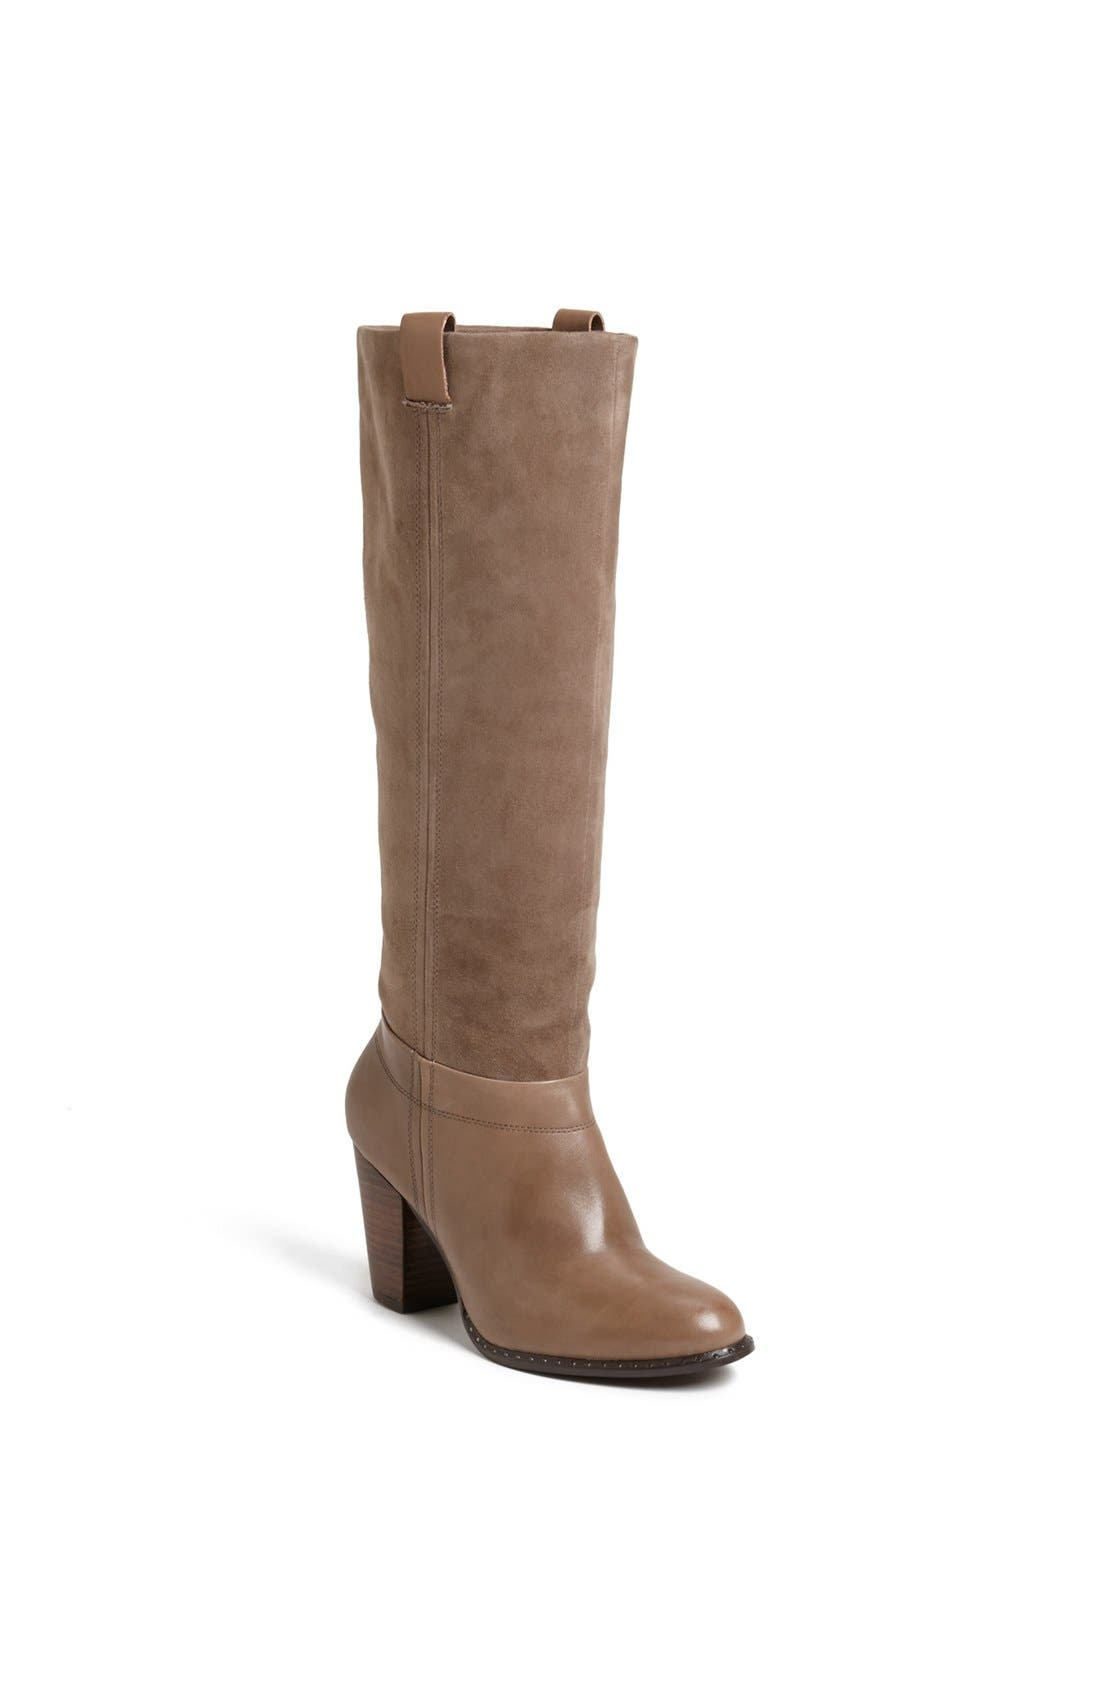 Main Image - Splendid 'Fairview' Suede & Leather Boot